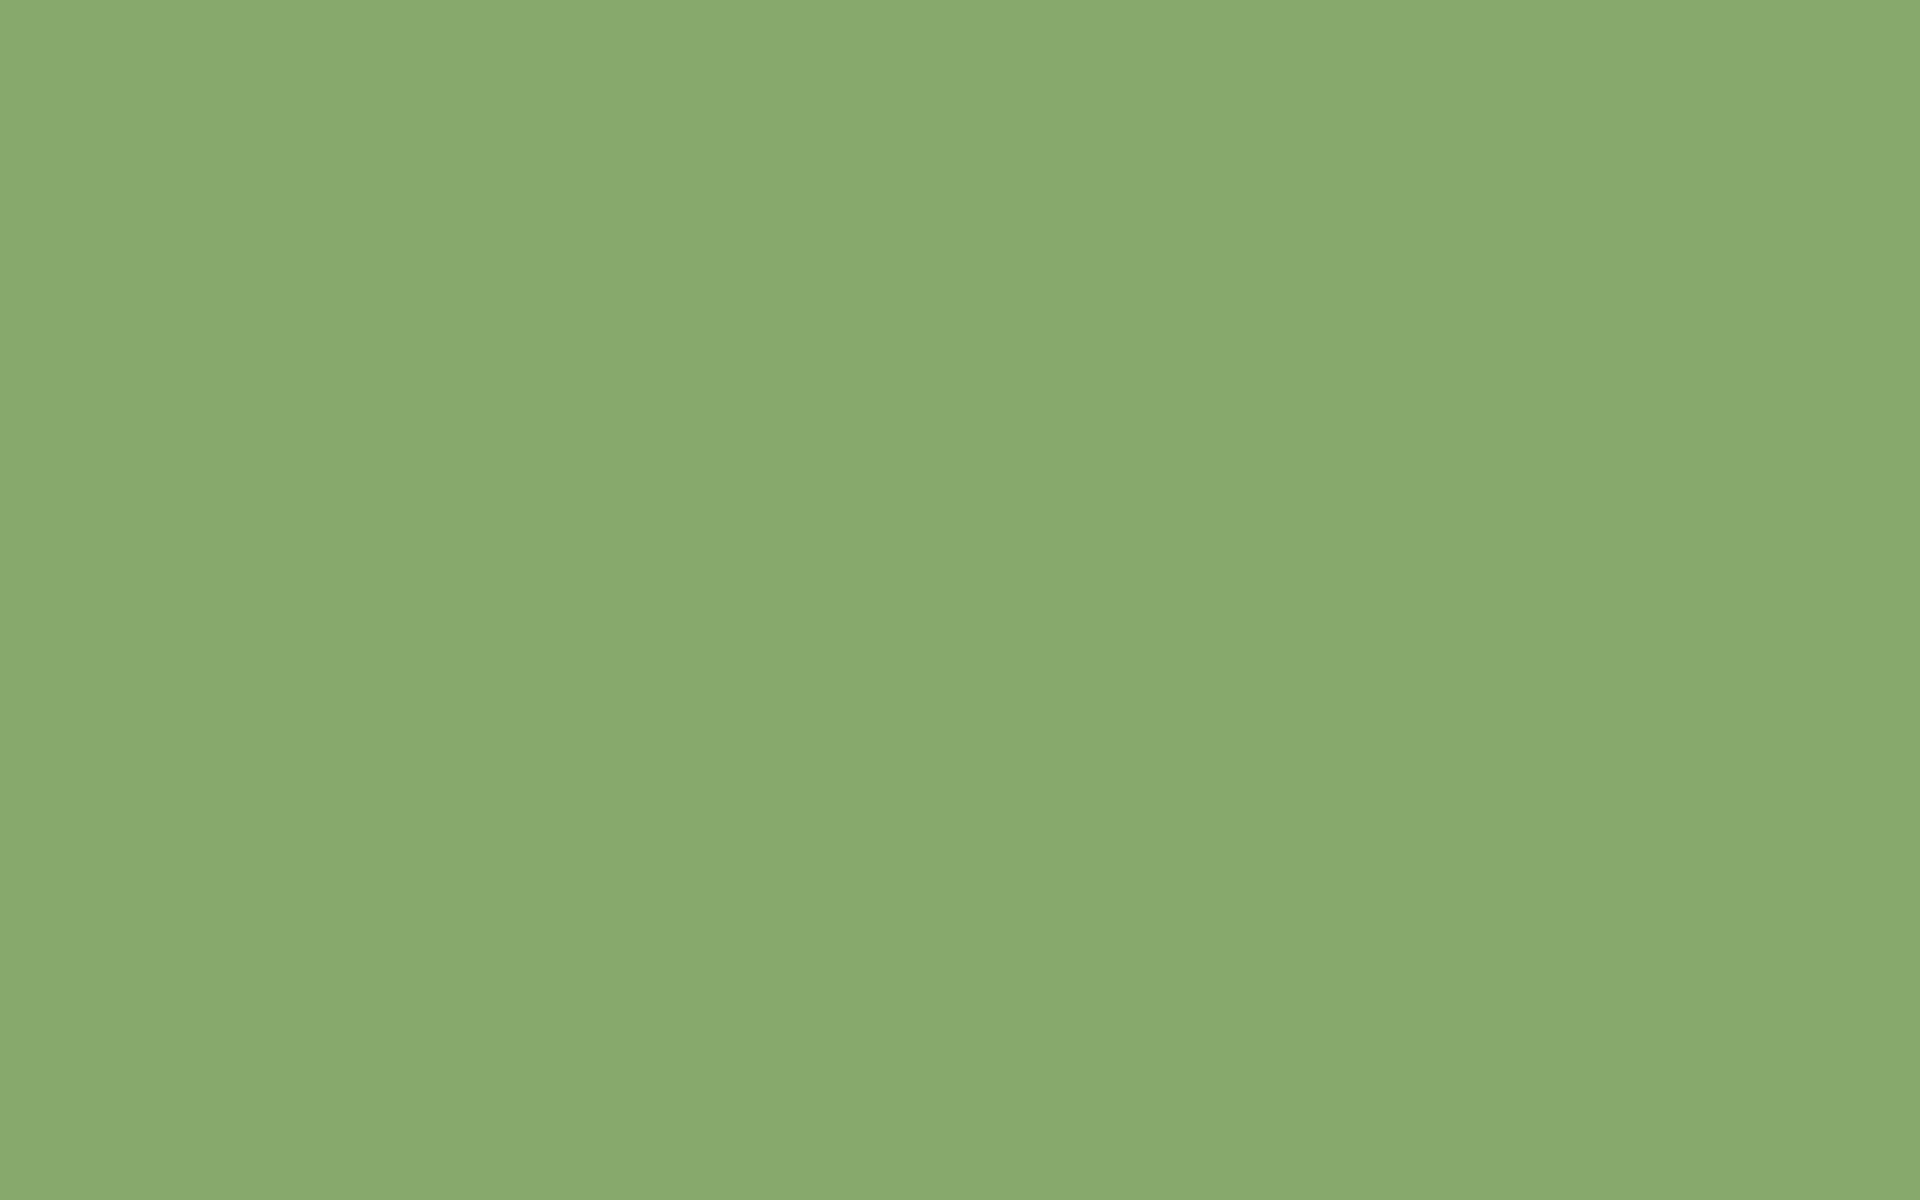 1920x1200 Asparagus Solid Color Background